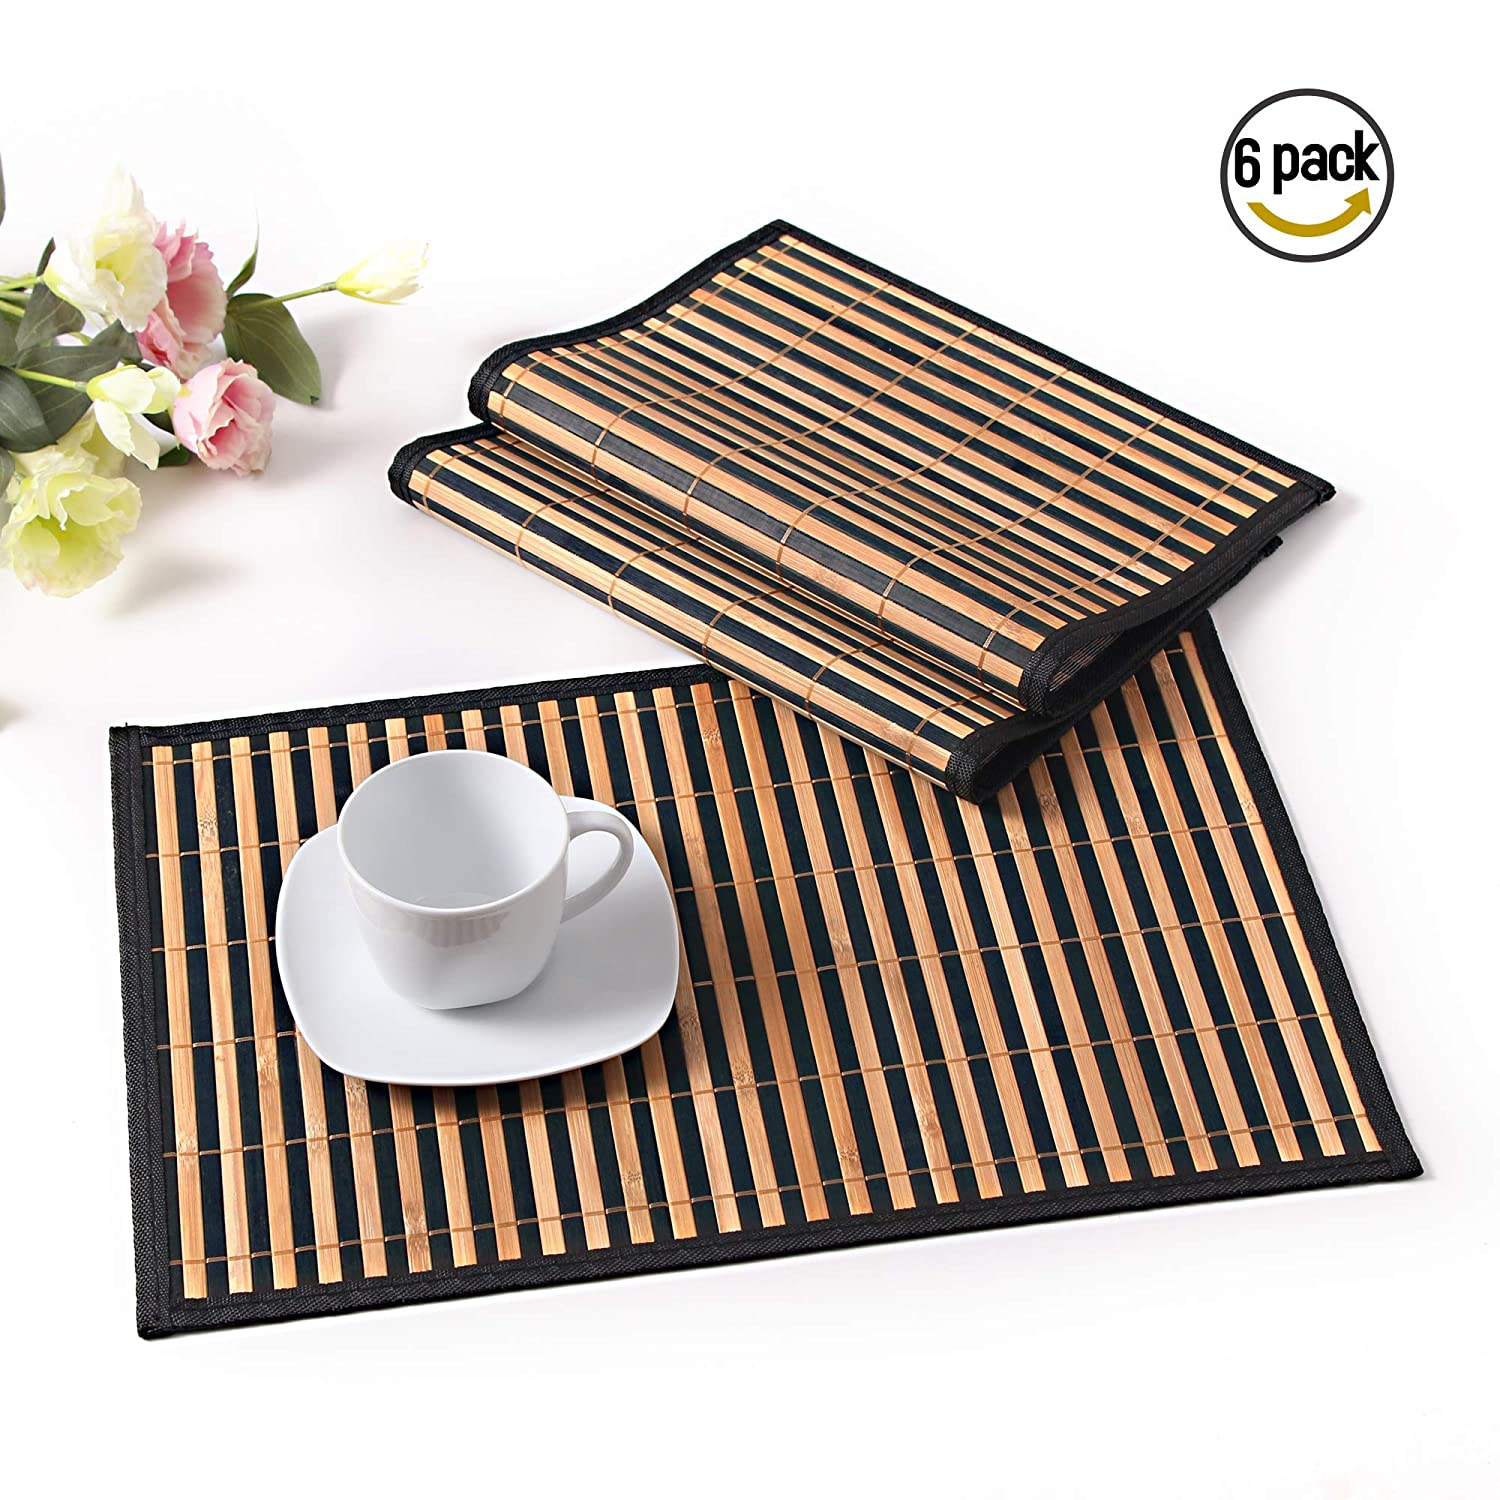 LOVECASA Placemats and Coaster Set Of 6, Bamboo Placemats and Coaster [Non-Slip] Washable Table Mats Set of 6 (46CM X31CM), Green